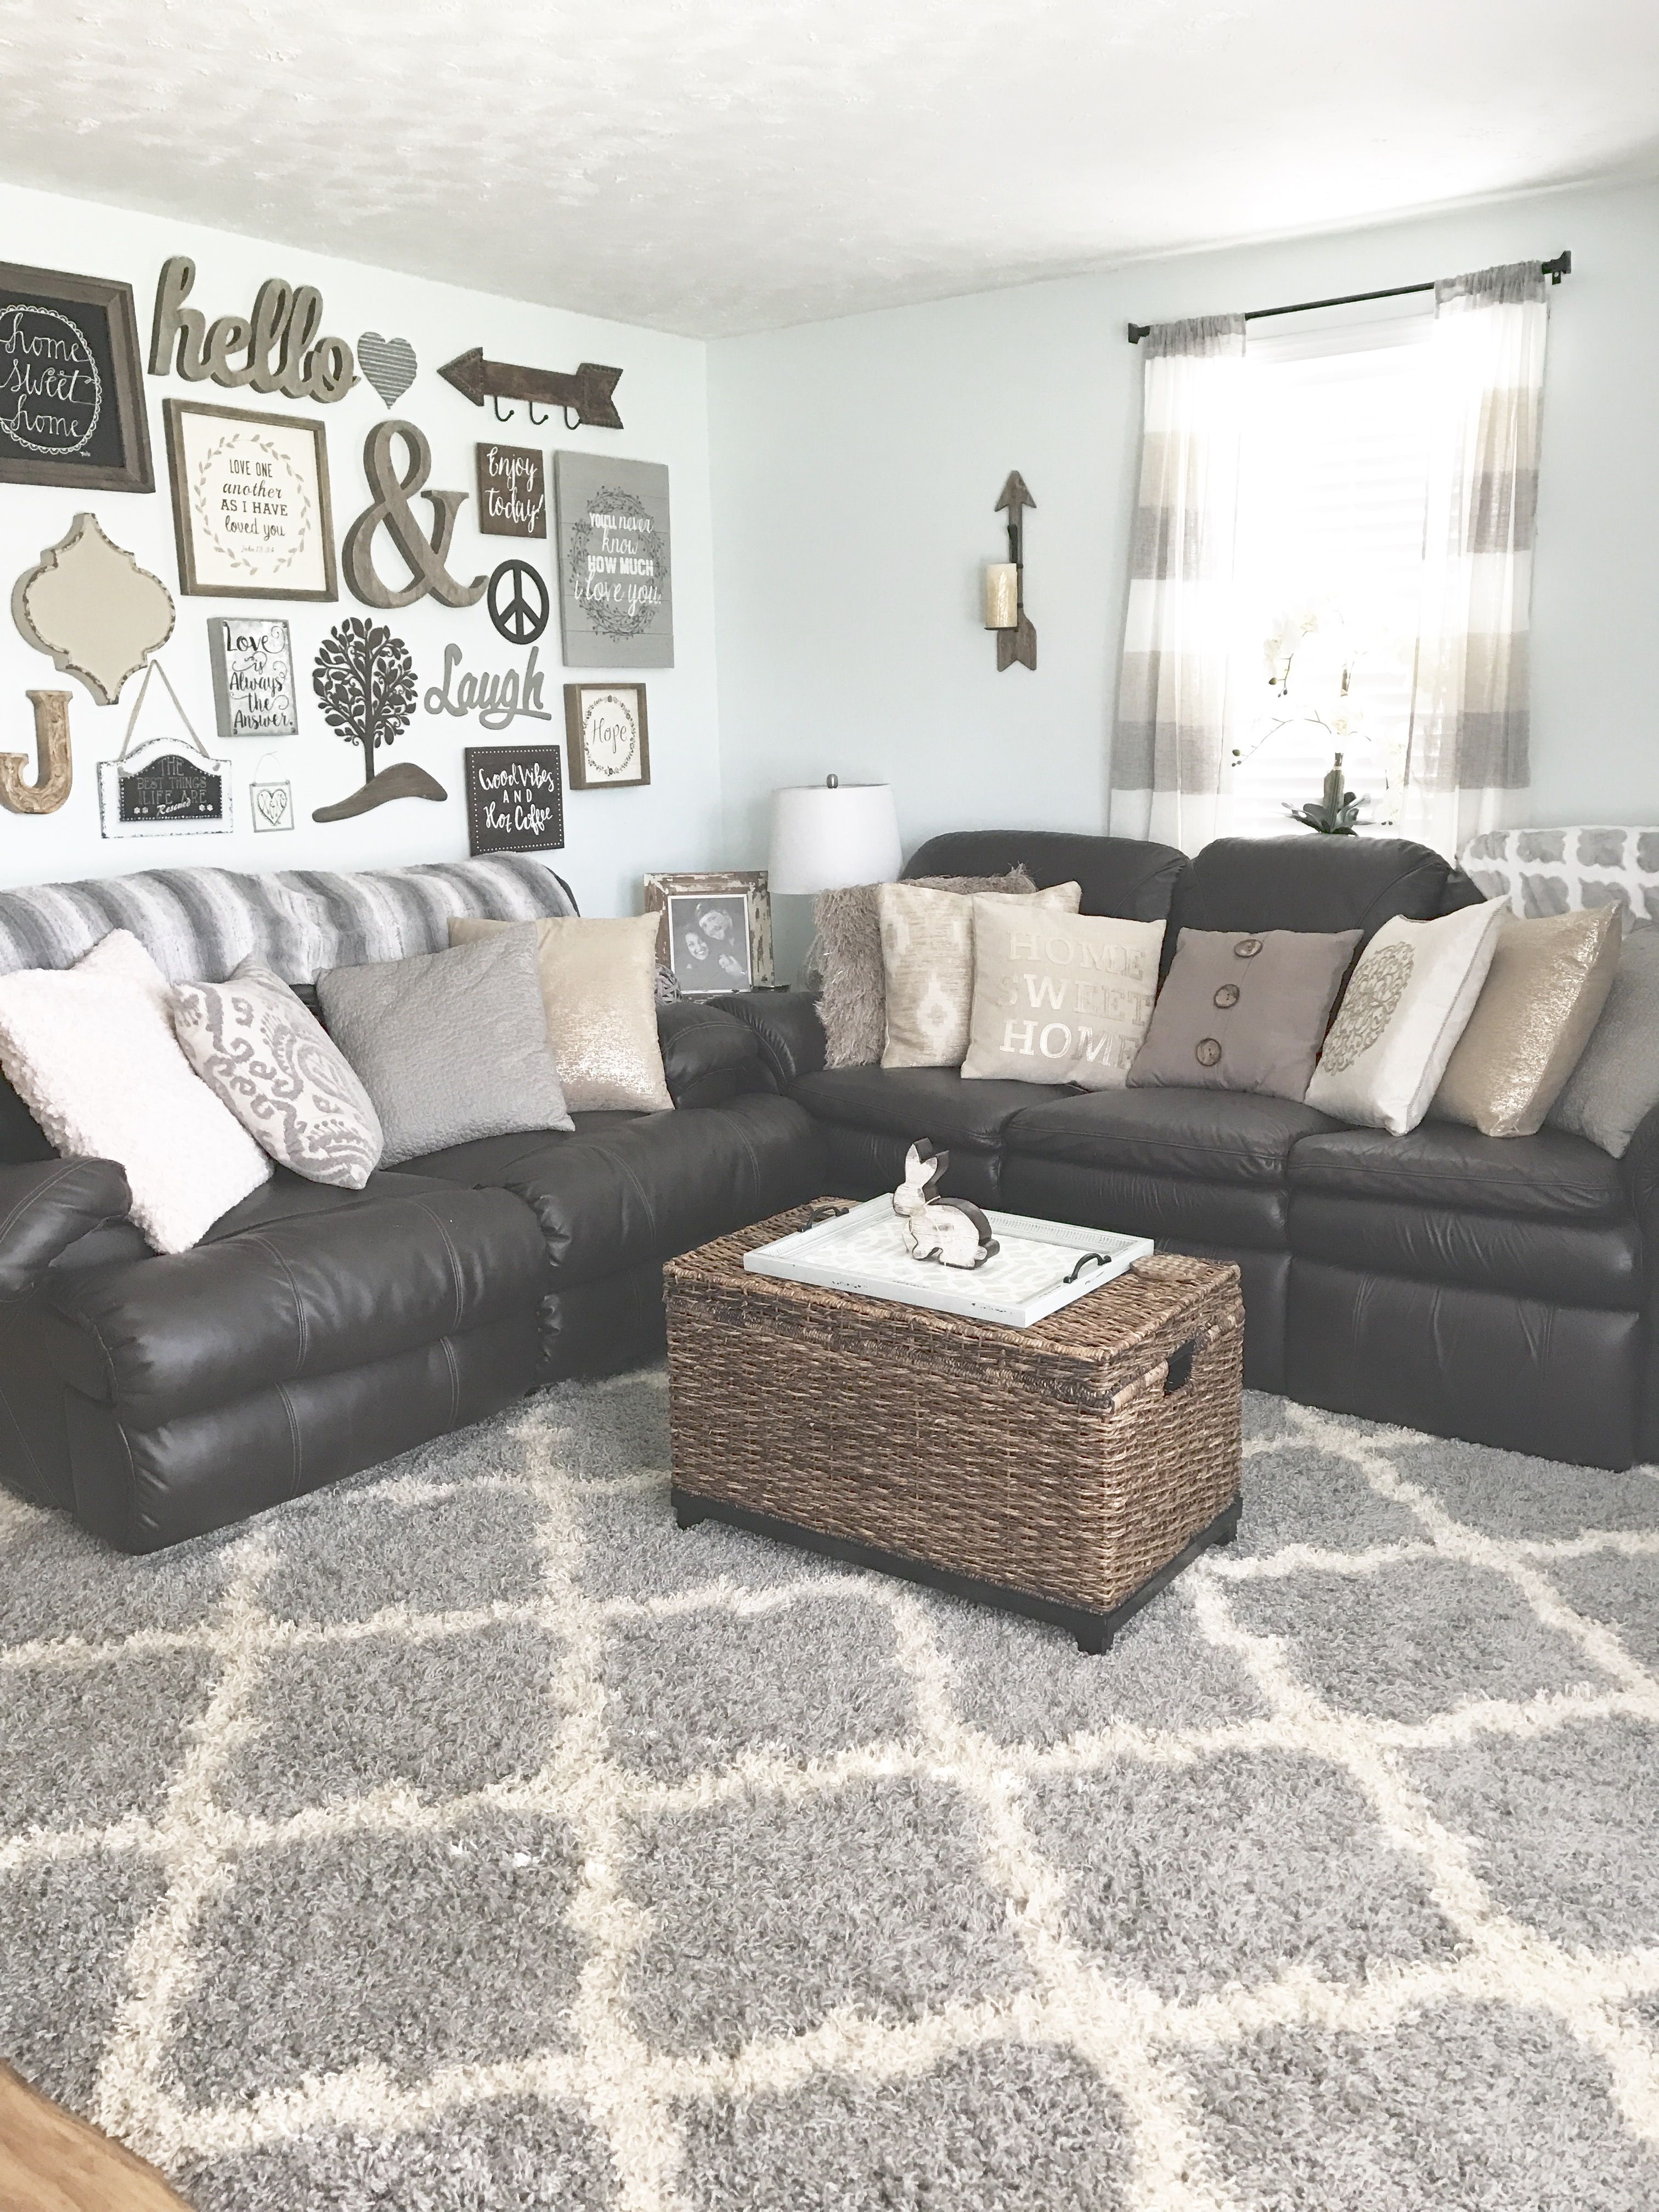 Brown Couch Pillow Ideas Chic Details For Cozy Rustic Living Room Décor Living Room